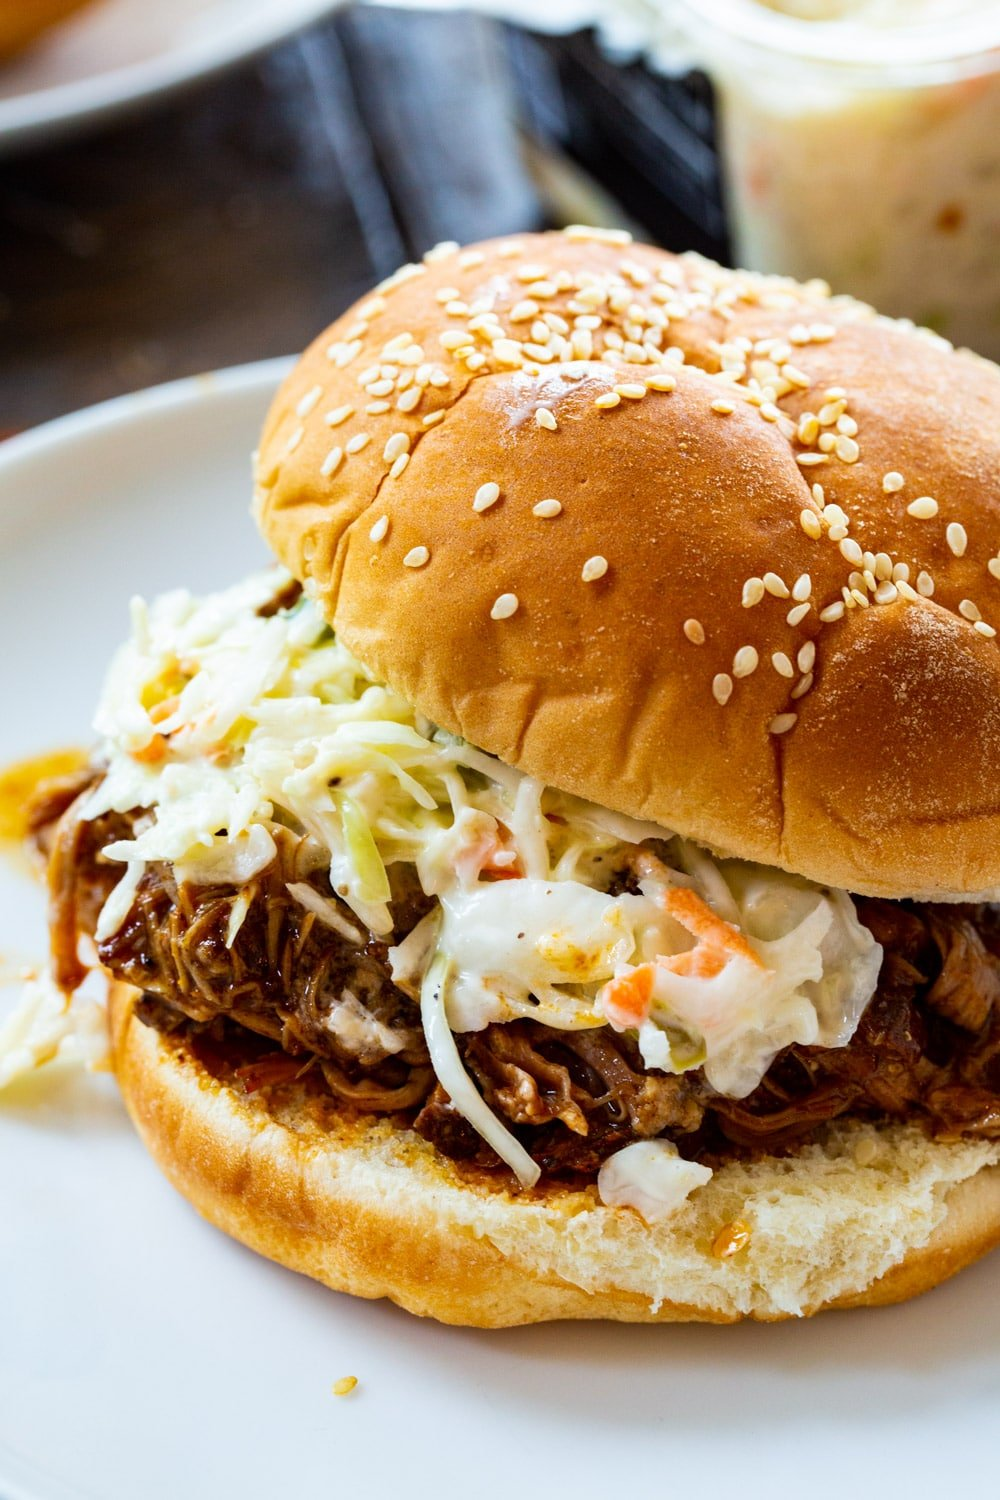 Pulled Pork on a bun with coleslaw.